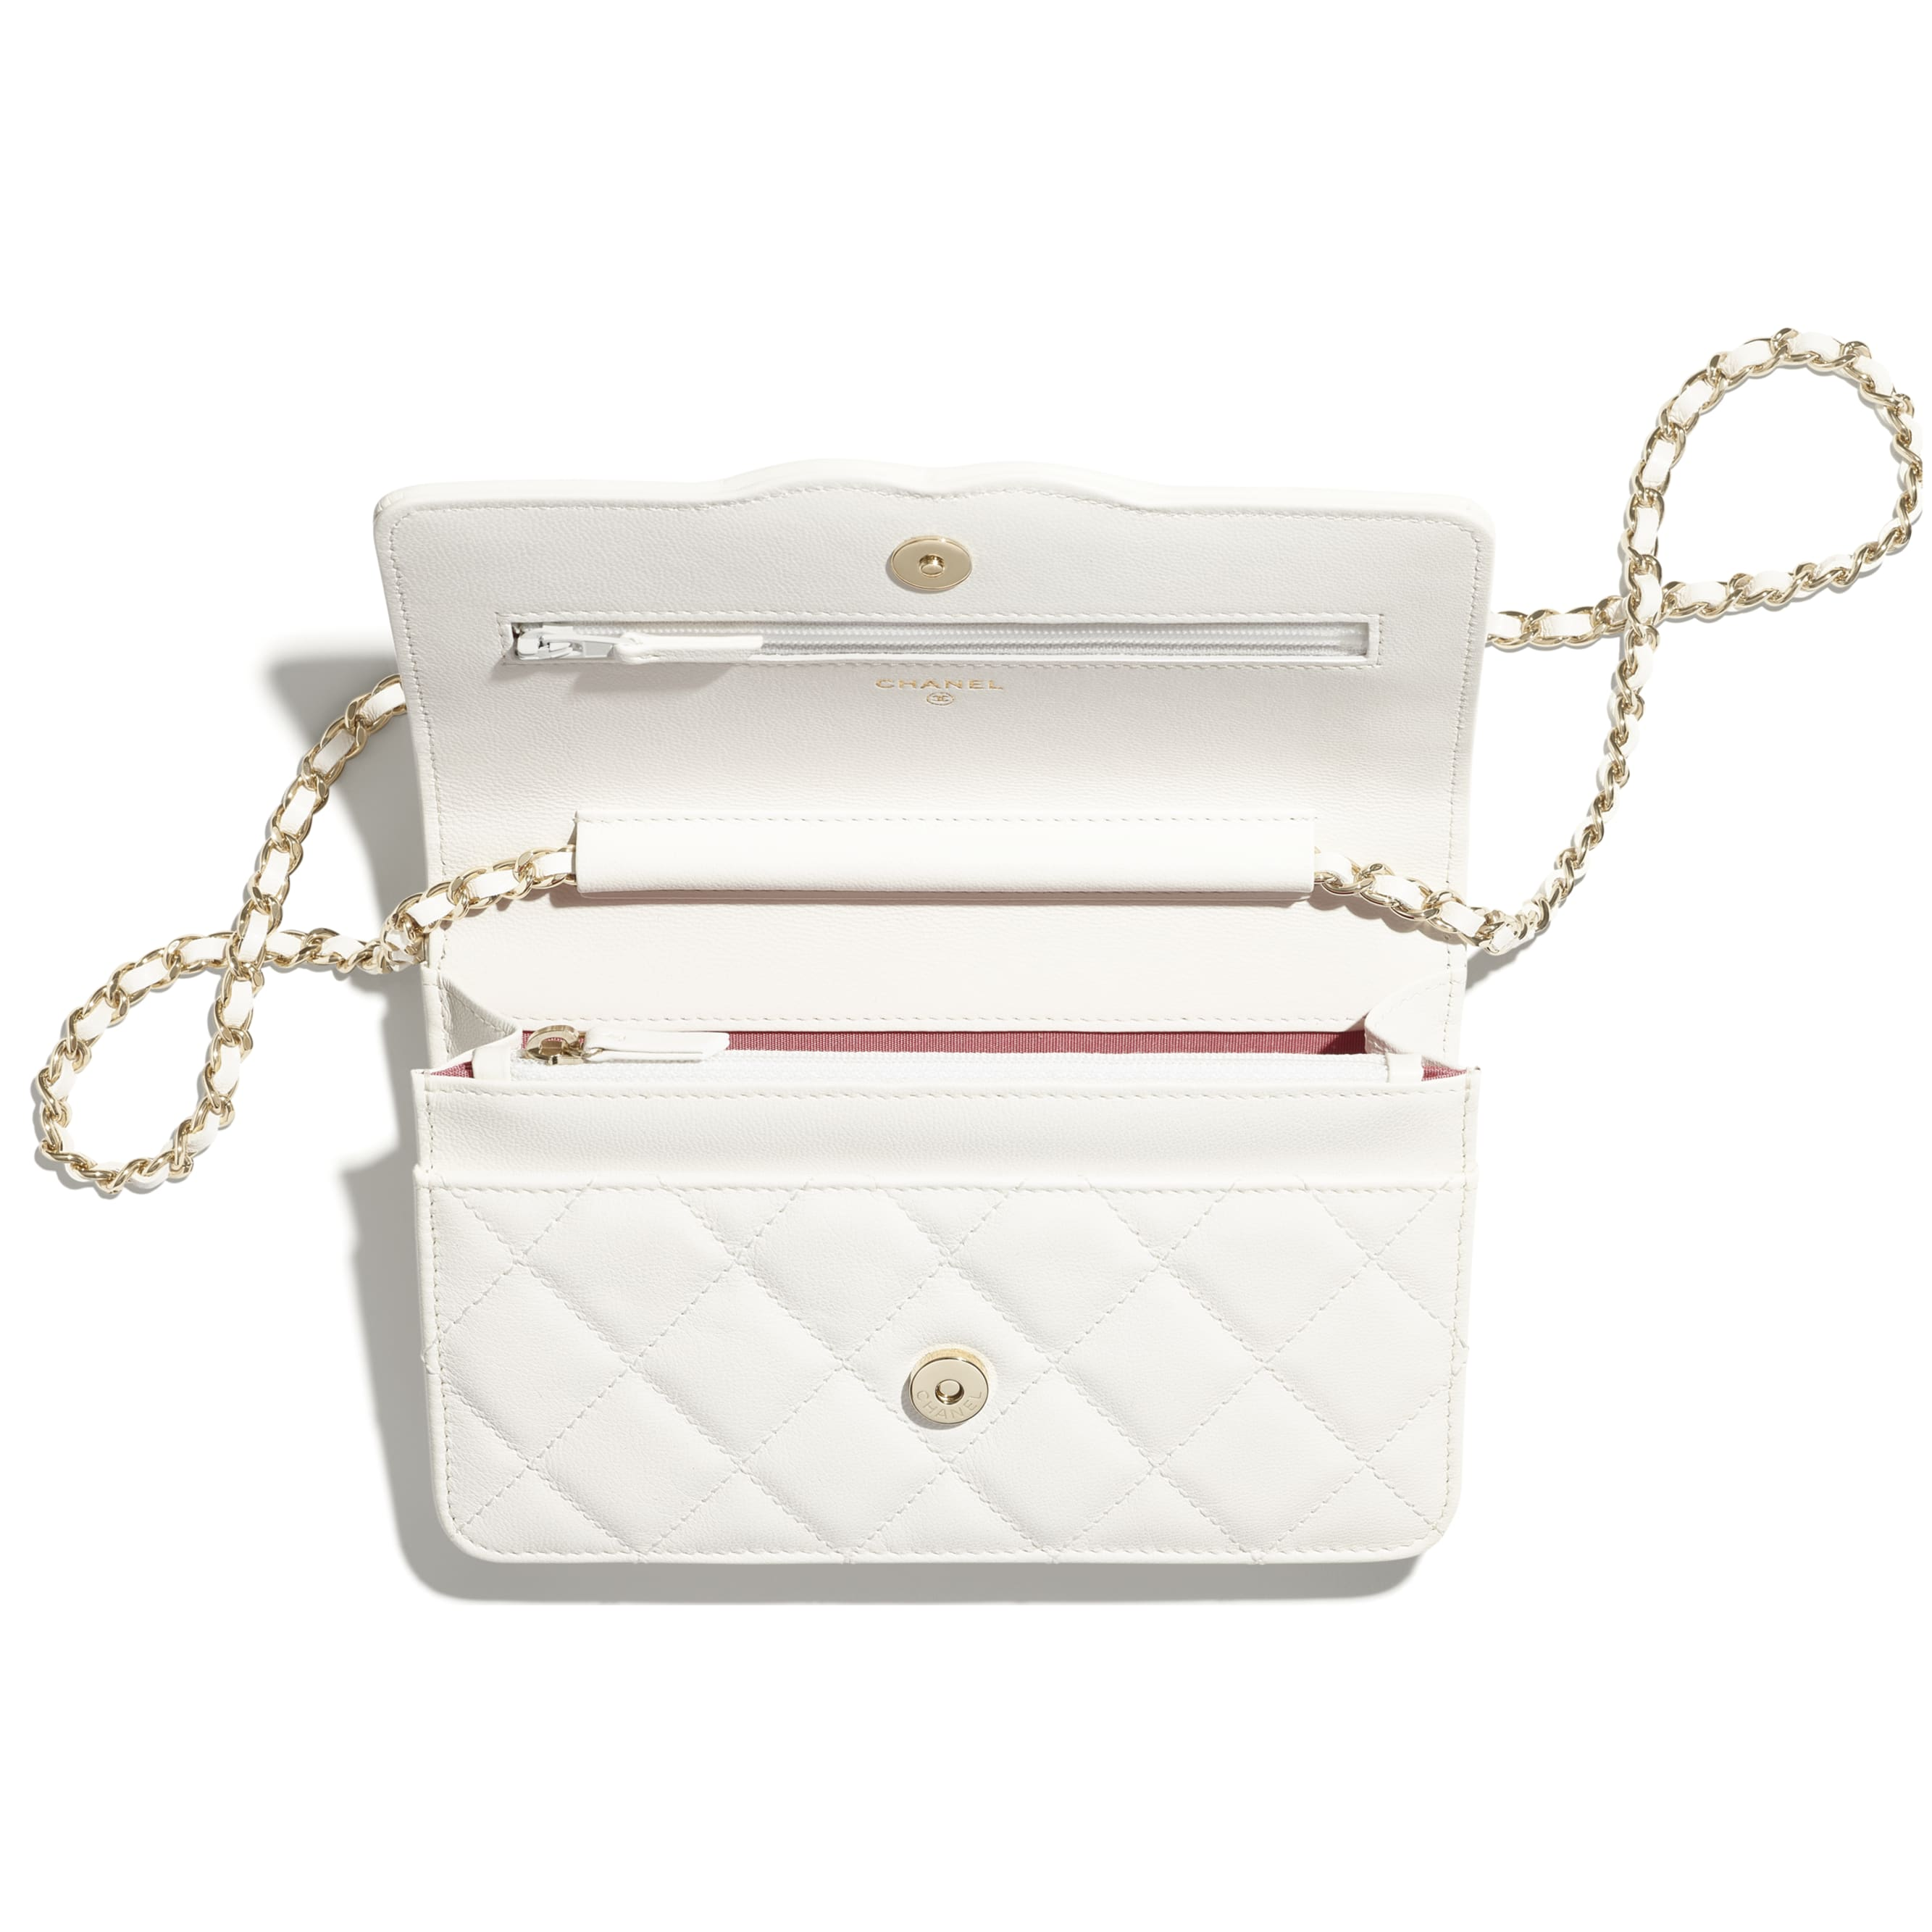 Wallet On Chain - White - Goatskin & Gold-Tone Metal - CHANEL - Alternative view - see standard sized version